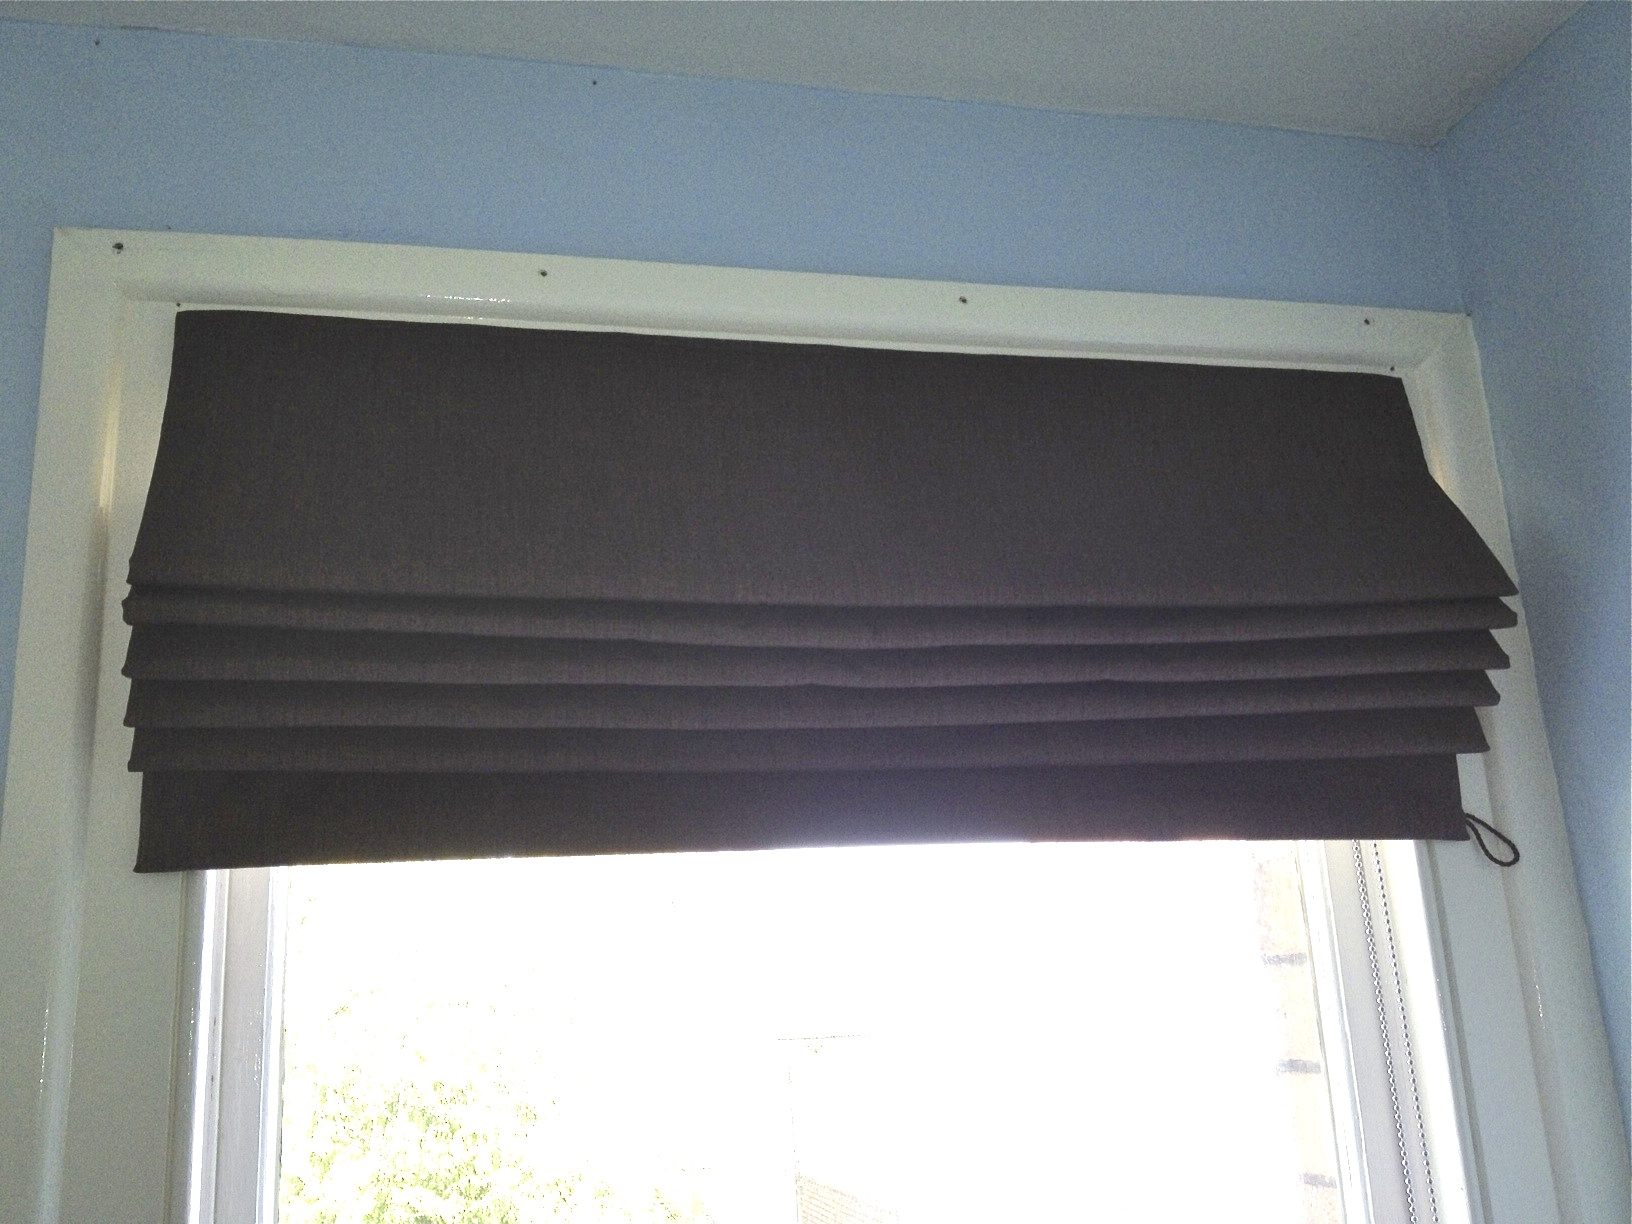 Vickers In Cafe The Thermal Blind Co With Thermal Roller Blinds (View 4 of 15)